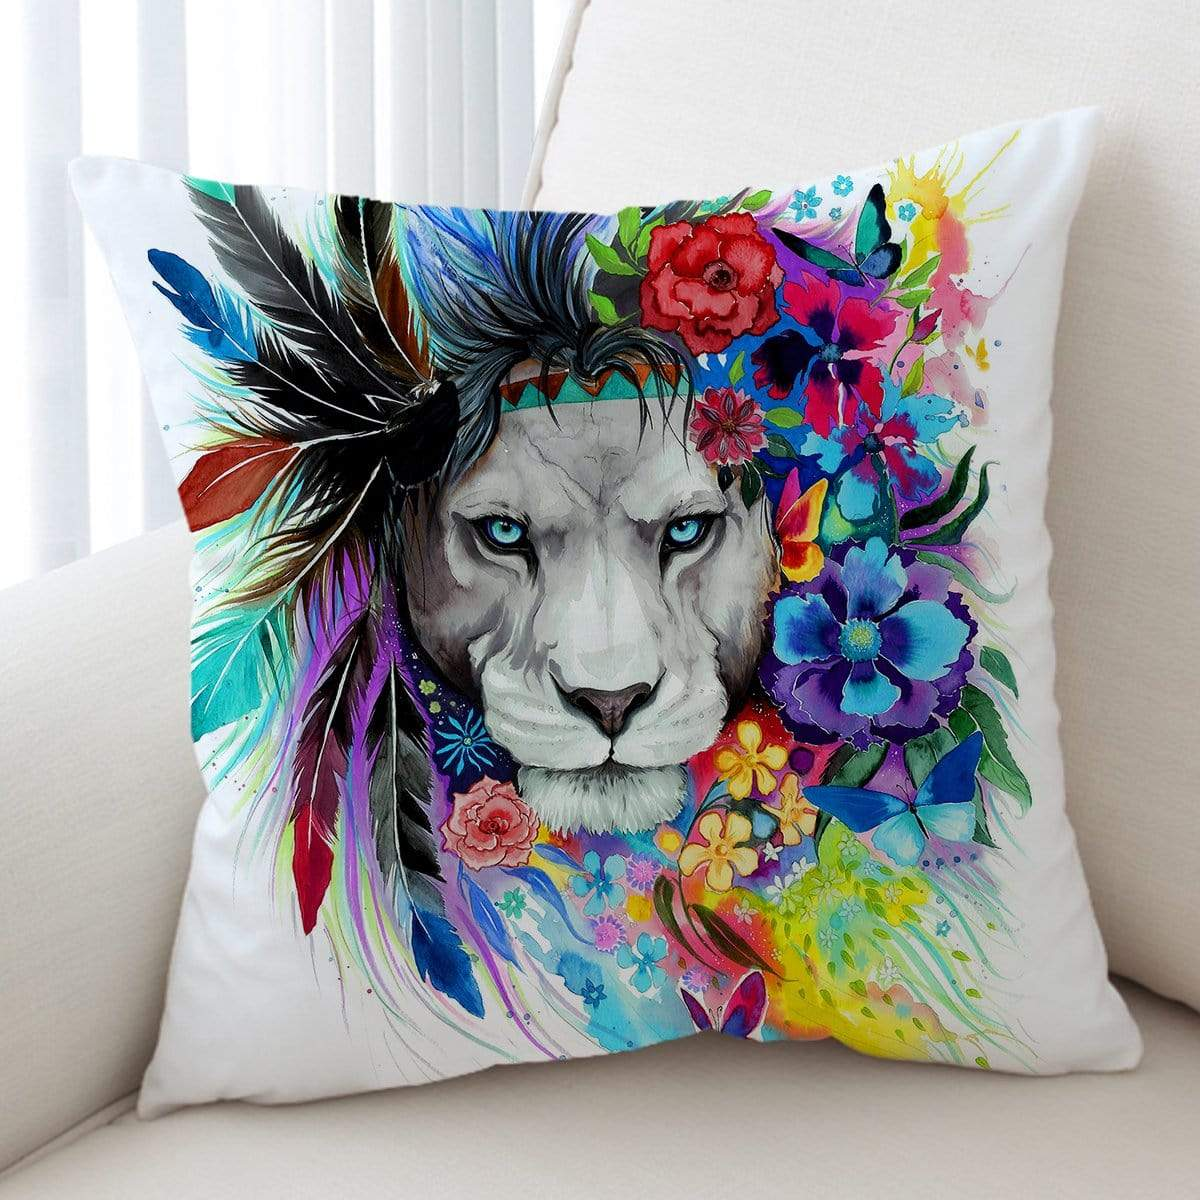 Water Colour Lion Cushion Cover - On Sale-On Sale-Little Squiffy